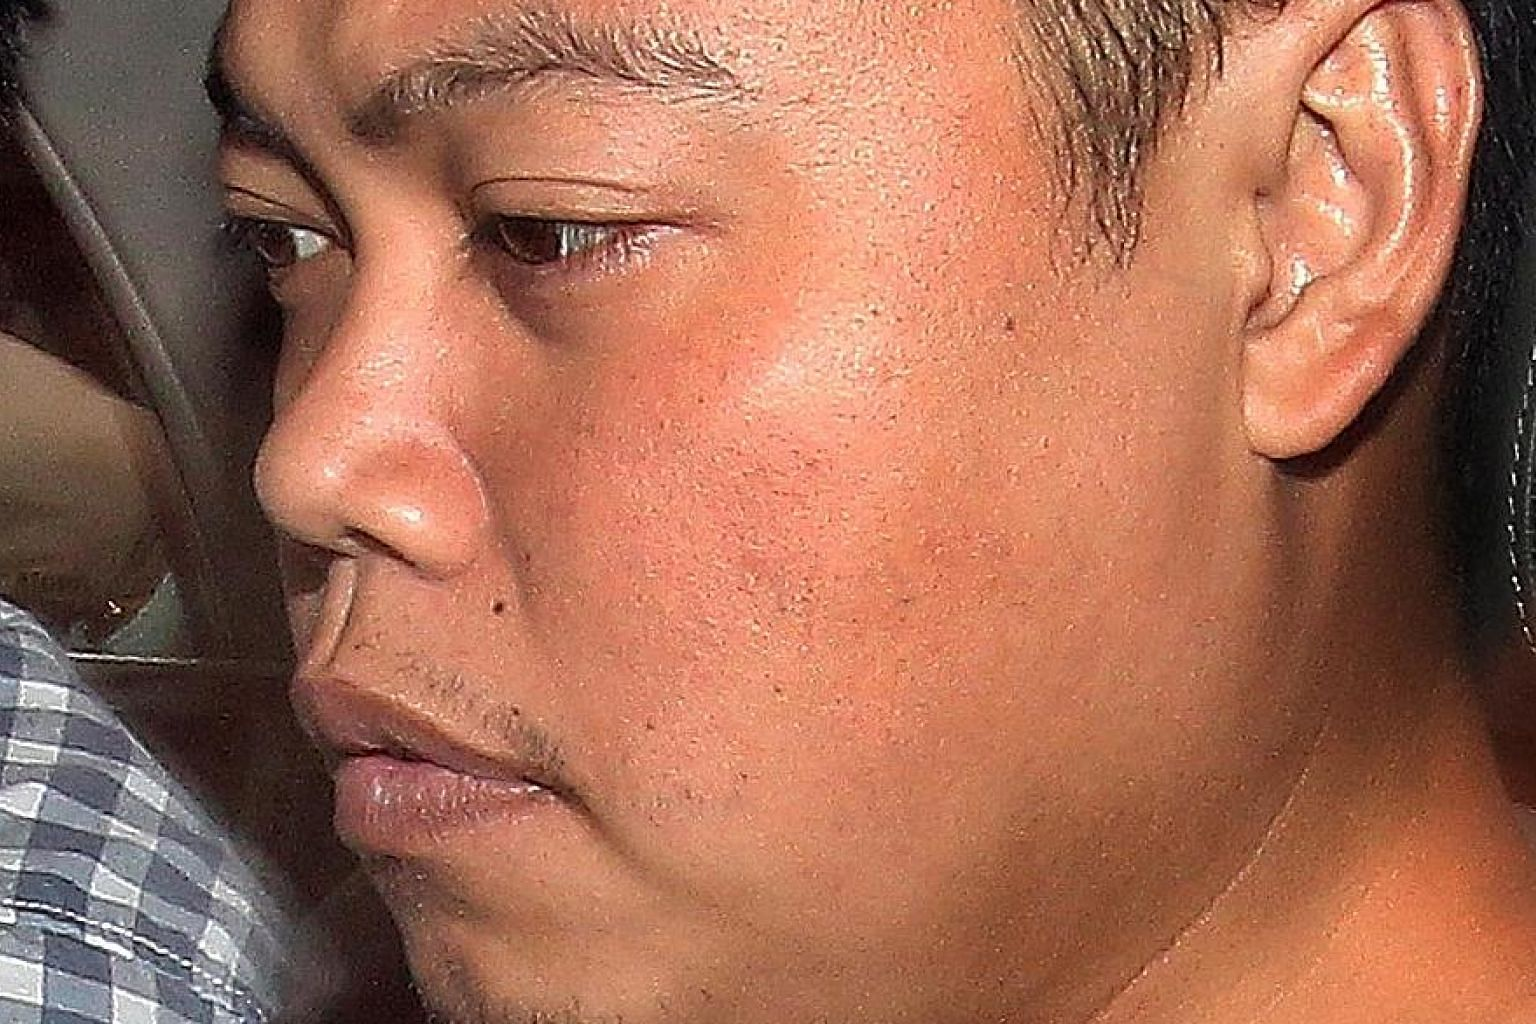 Iskandar, 37, was found guilty of killing car workshop owner Tan Boon Sin, 67, and his son Chee Heong, 42, at the older man's Hillside Drive house.